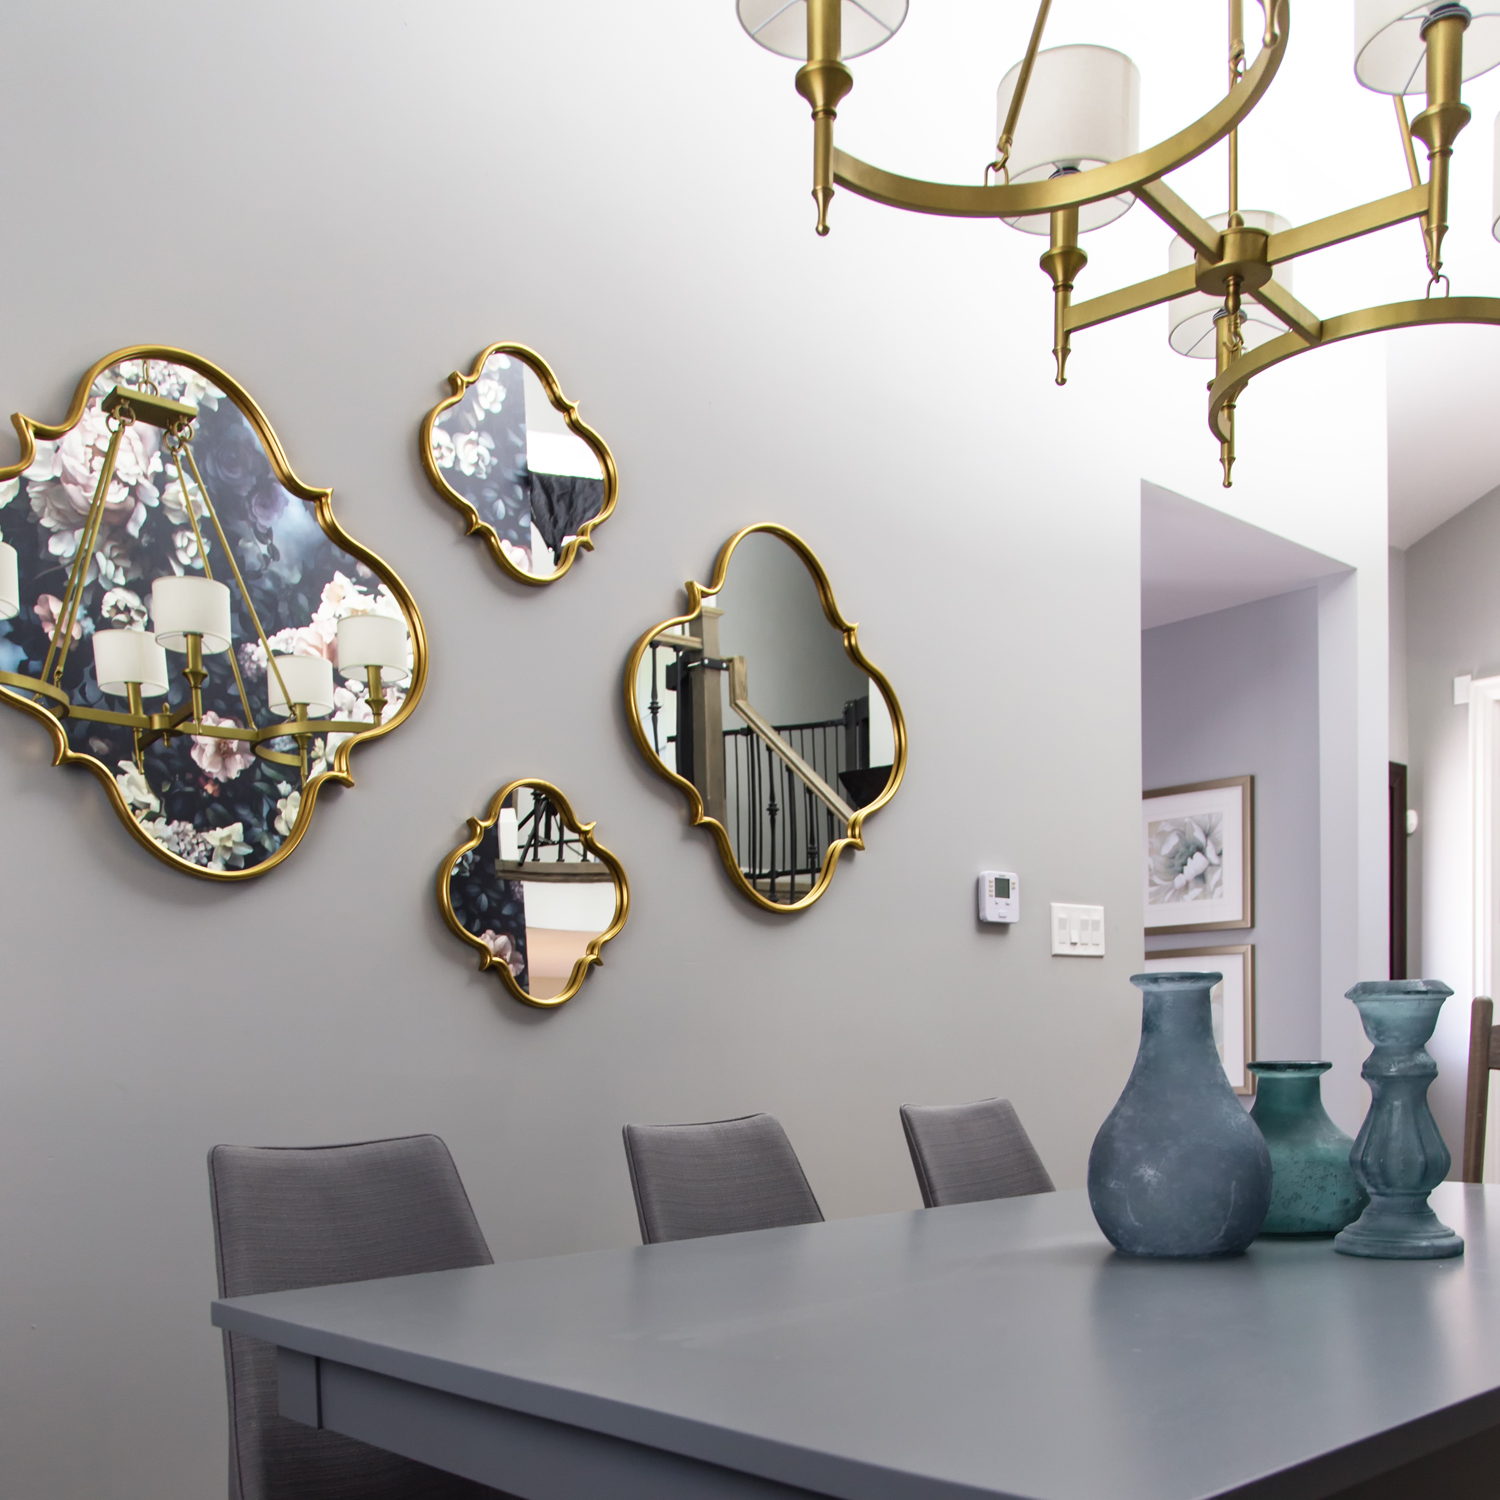 mirror-gallery-wall